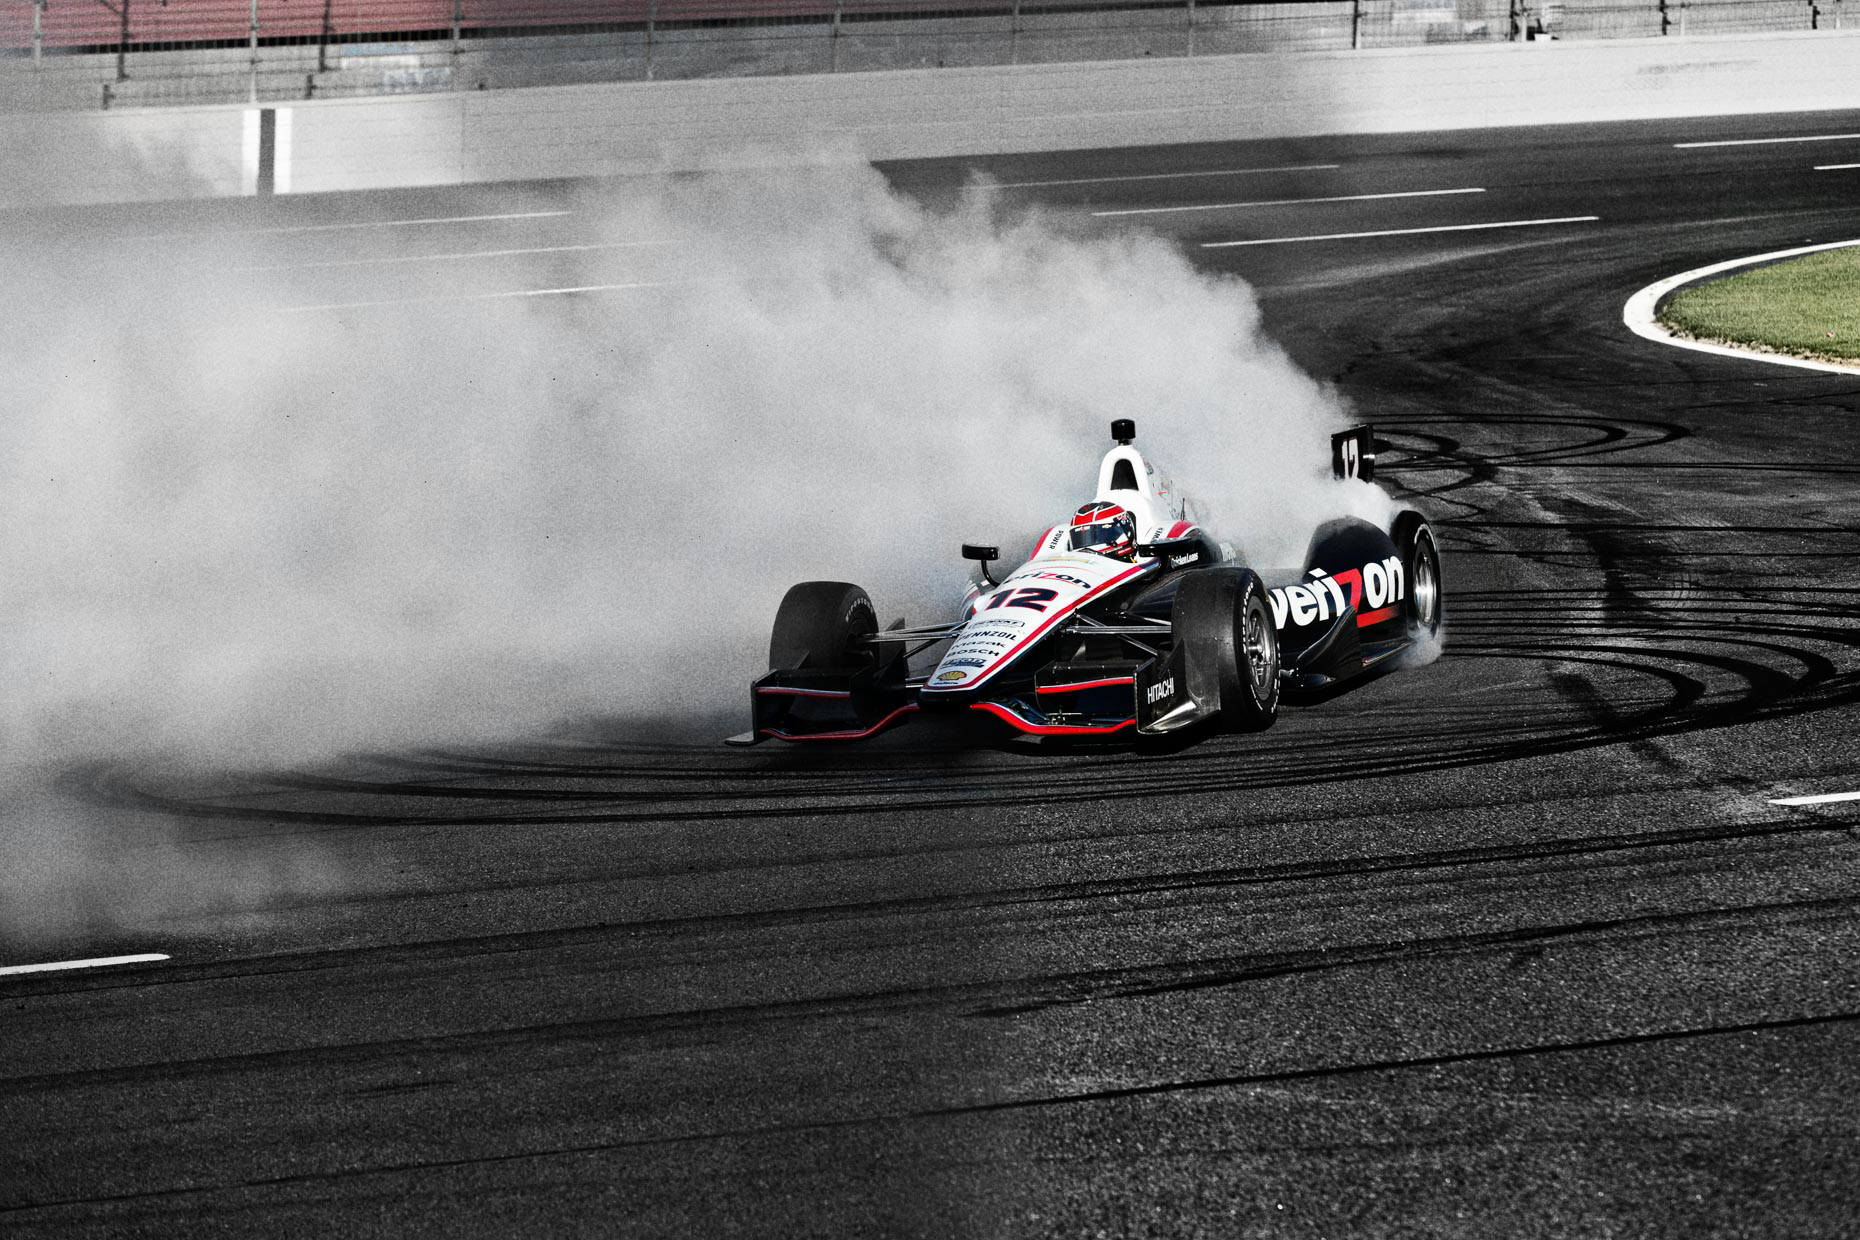 Racecar driver and athlete Will Power burns rubber and does donuts on the IndyCar Team Penske Charlotte Motor Speedway by Andy Batt